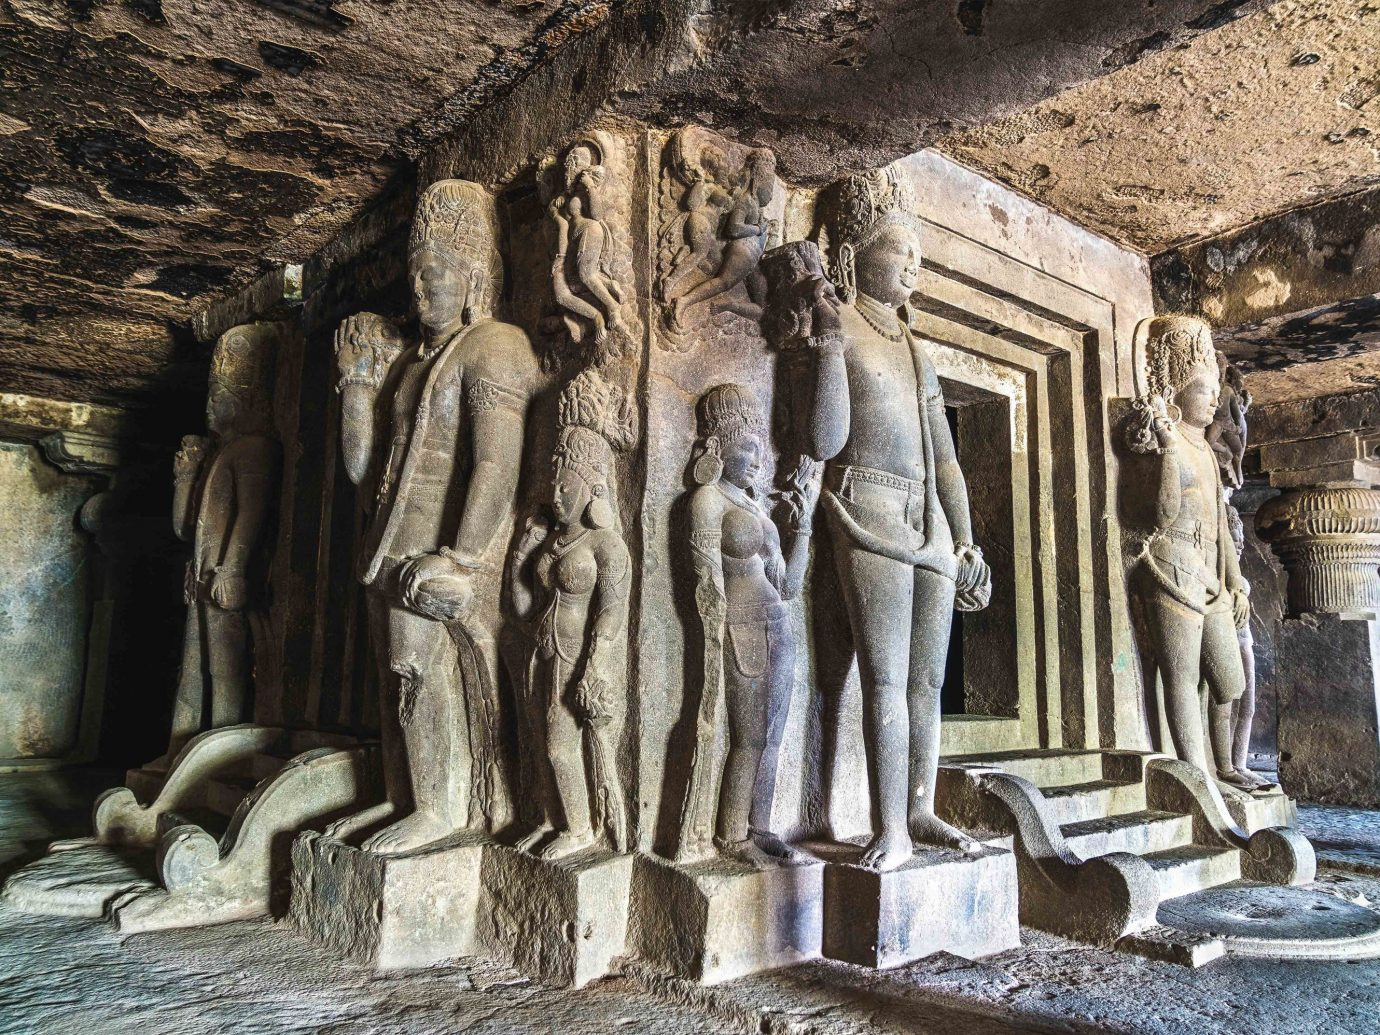 India historic site sculpture stone carving ancient roman architecture statue tourist attraction ancient history archaeological site monument carving history Ruins relief temple classical sculpture formation ancient rome tourism column medieval architecture